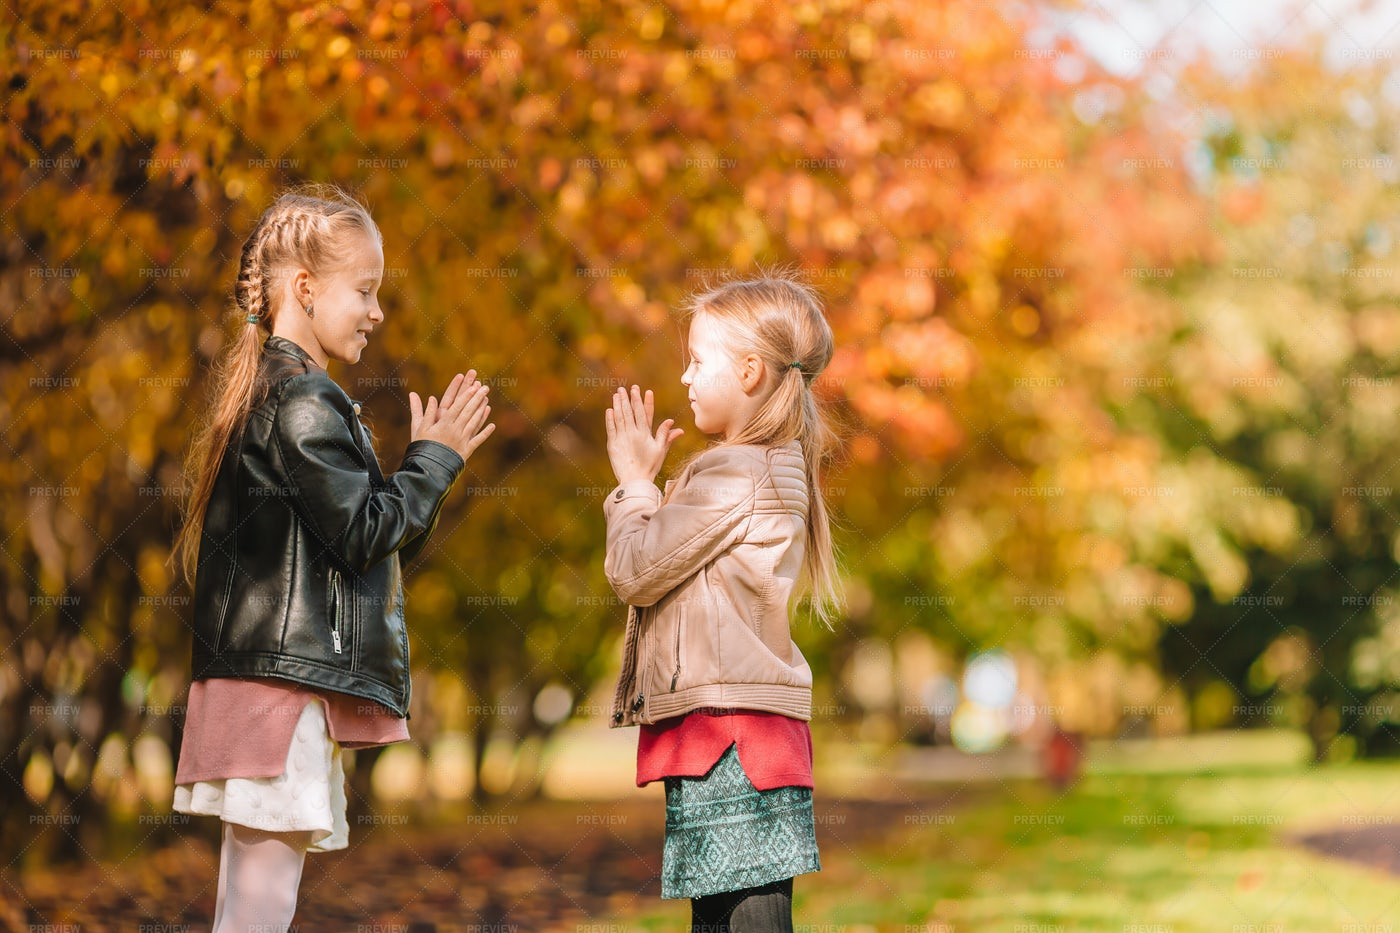 Playing Clapping Games With Sister: Stock Photos